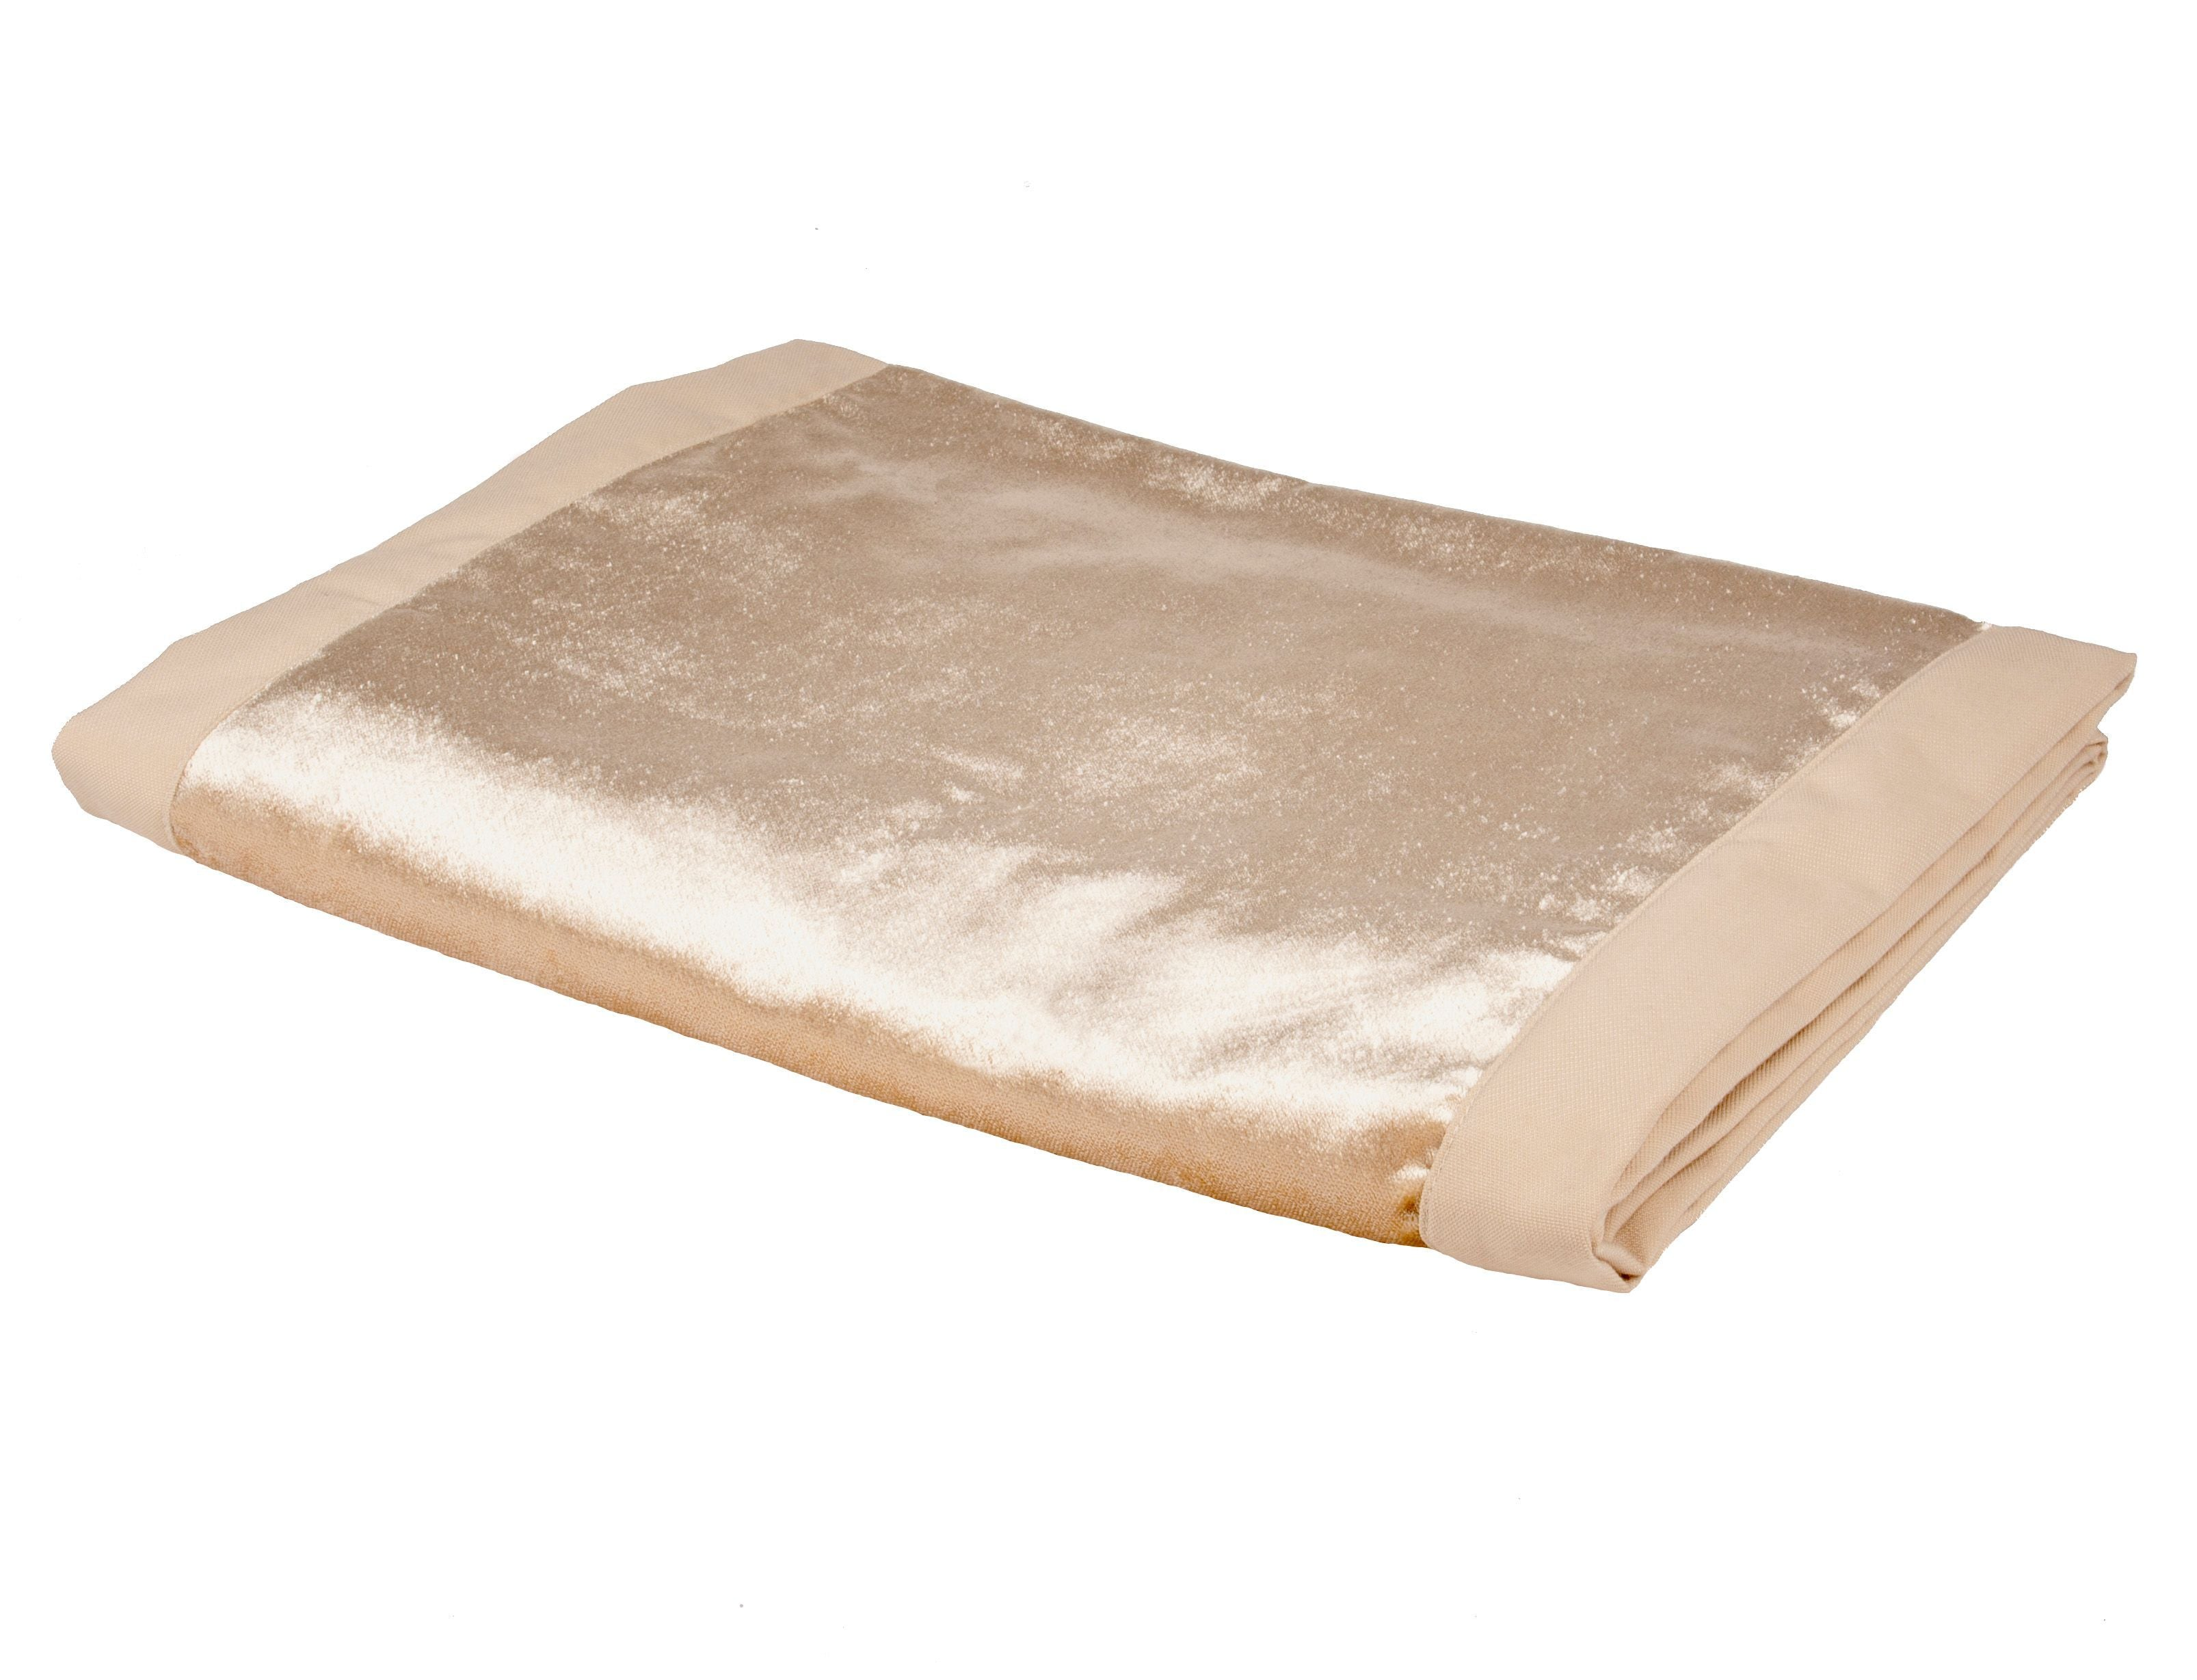 McAlister Textiles Champagne Gold Crushed Velvet Throws & Runners Throws and Runners Bed Runner (50cm x 240cm)